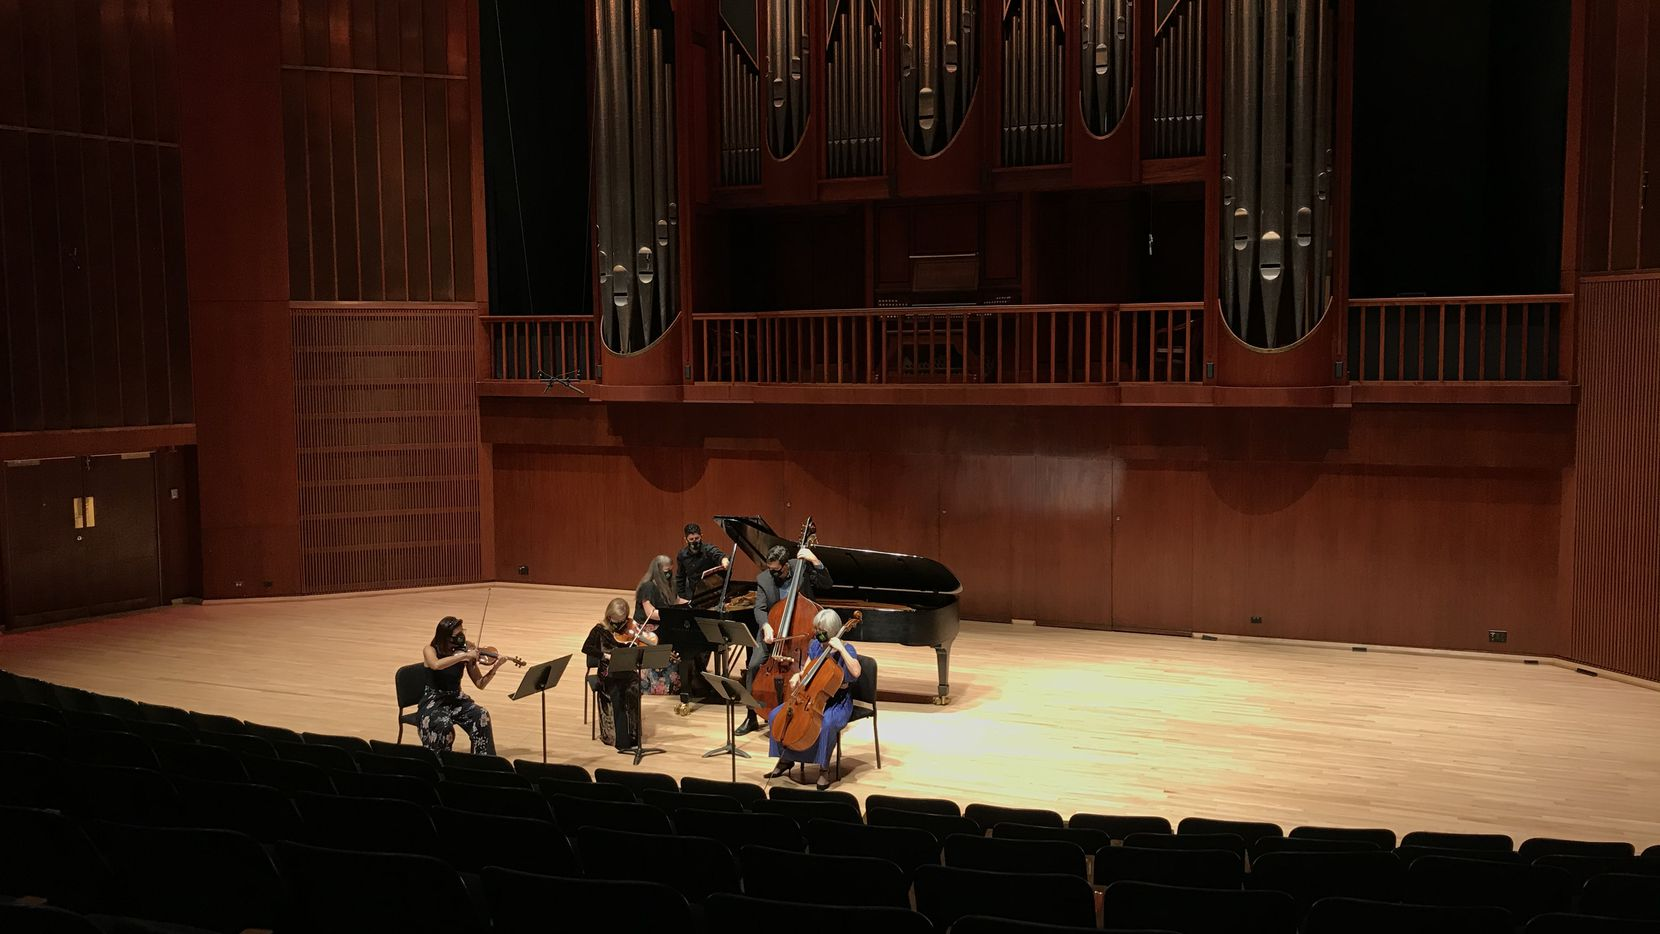 Voices of Change artistic director and violinist Maria Schleuning, violist Barbara Sudweeks, pianist Liudmila Georgievskaya, bassist Brian Perry and cellist Gayane Manasjan Fullfordand perform Ralph Vaughan Williams' Piano Quintet in C minor at Southern Methodist University's Caruth Auditorium on Oct. 18.